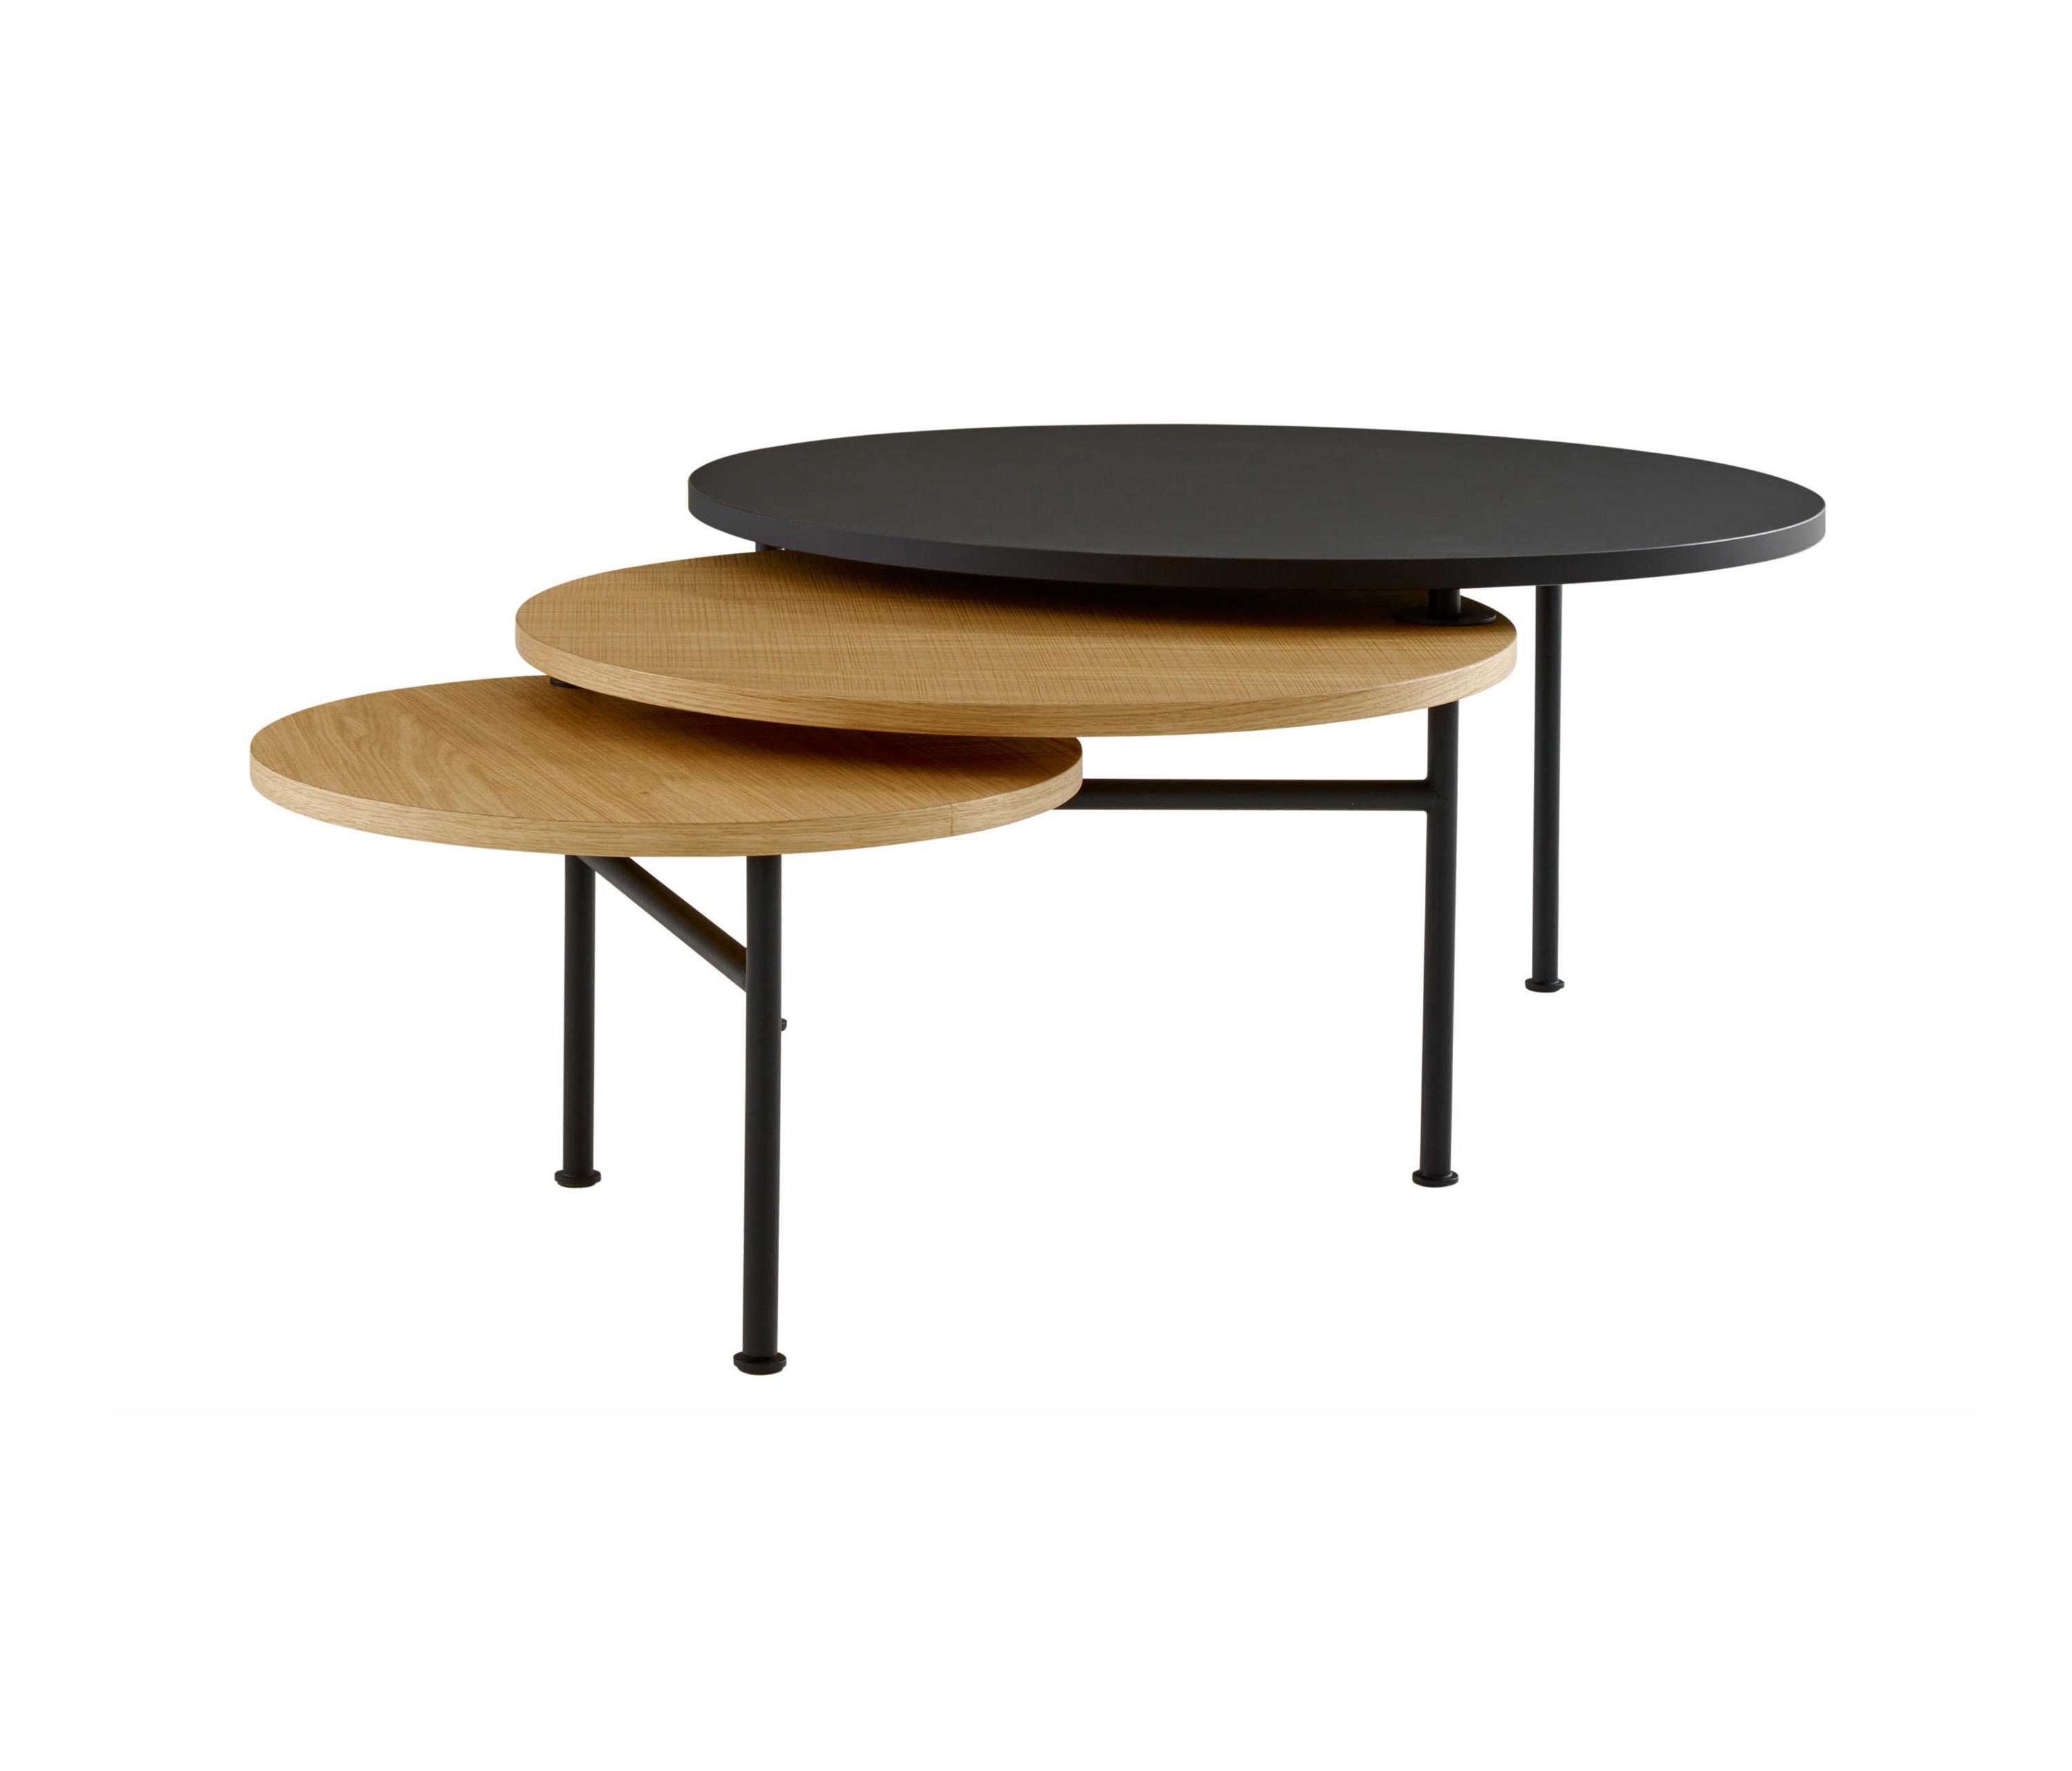 Admirable Fold Low Table Designer Furniture Architonic Caraccident5 Cool Chair Designs And Ideas Caraccident5Info